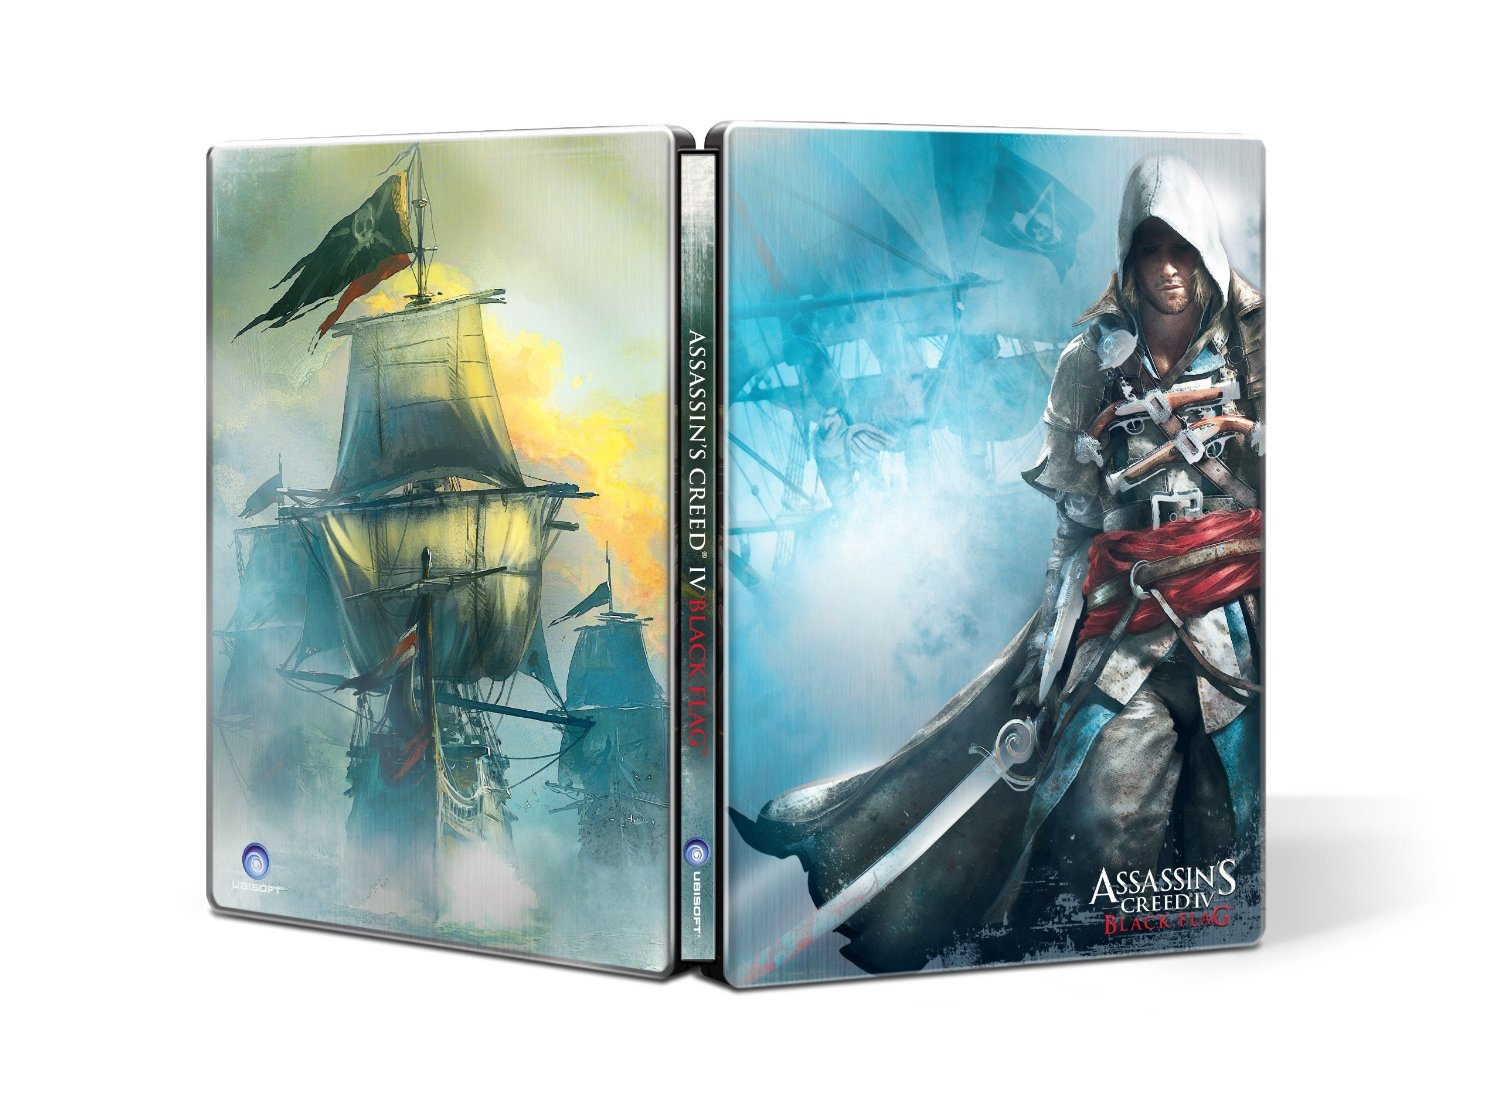 Assassin's Creed Black Flag  Steelbook